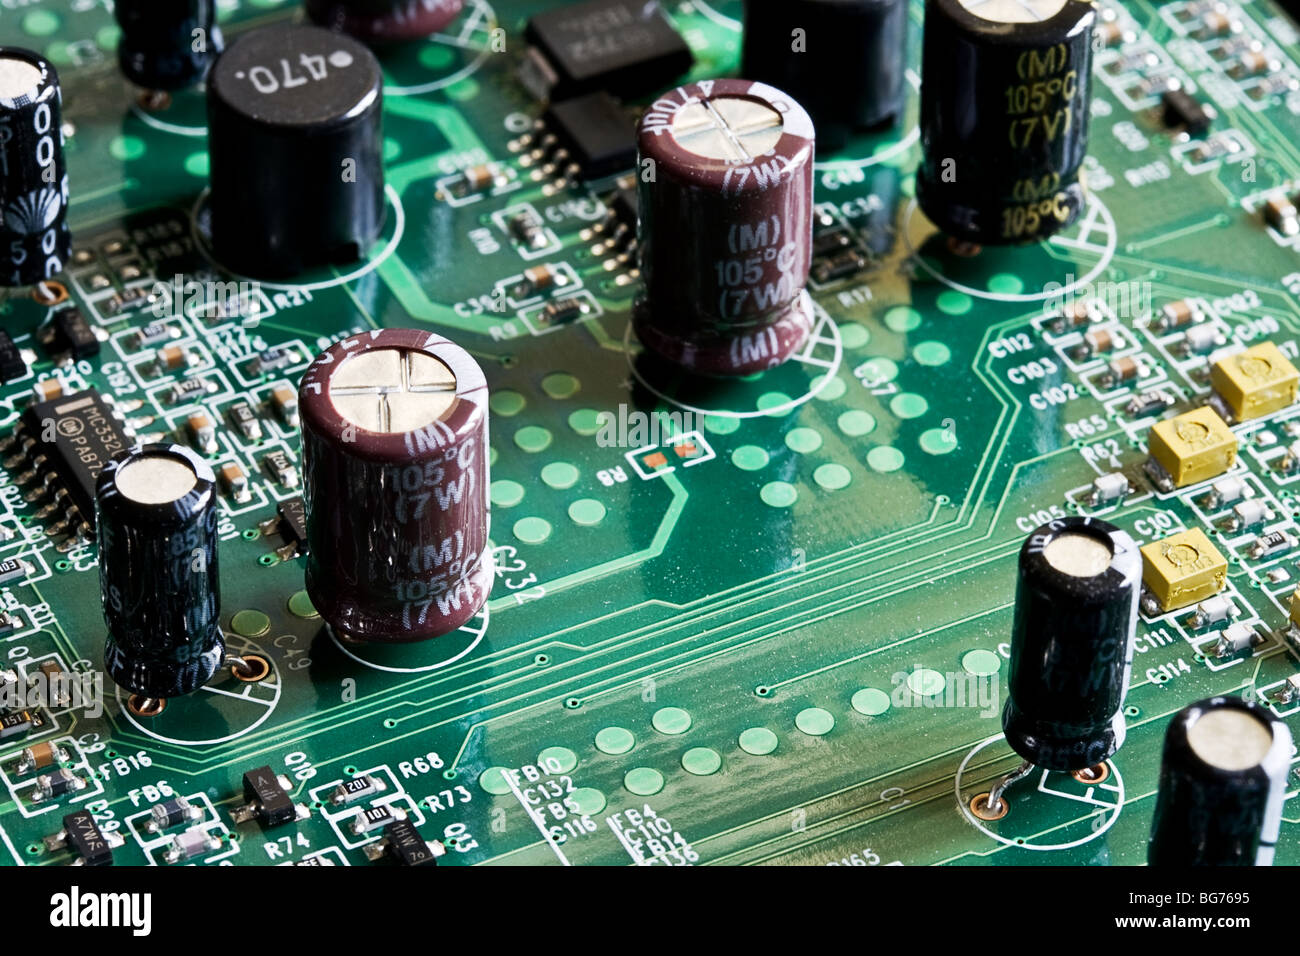 Close up photograph of a circuit board and electrical components ...